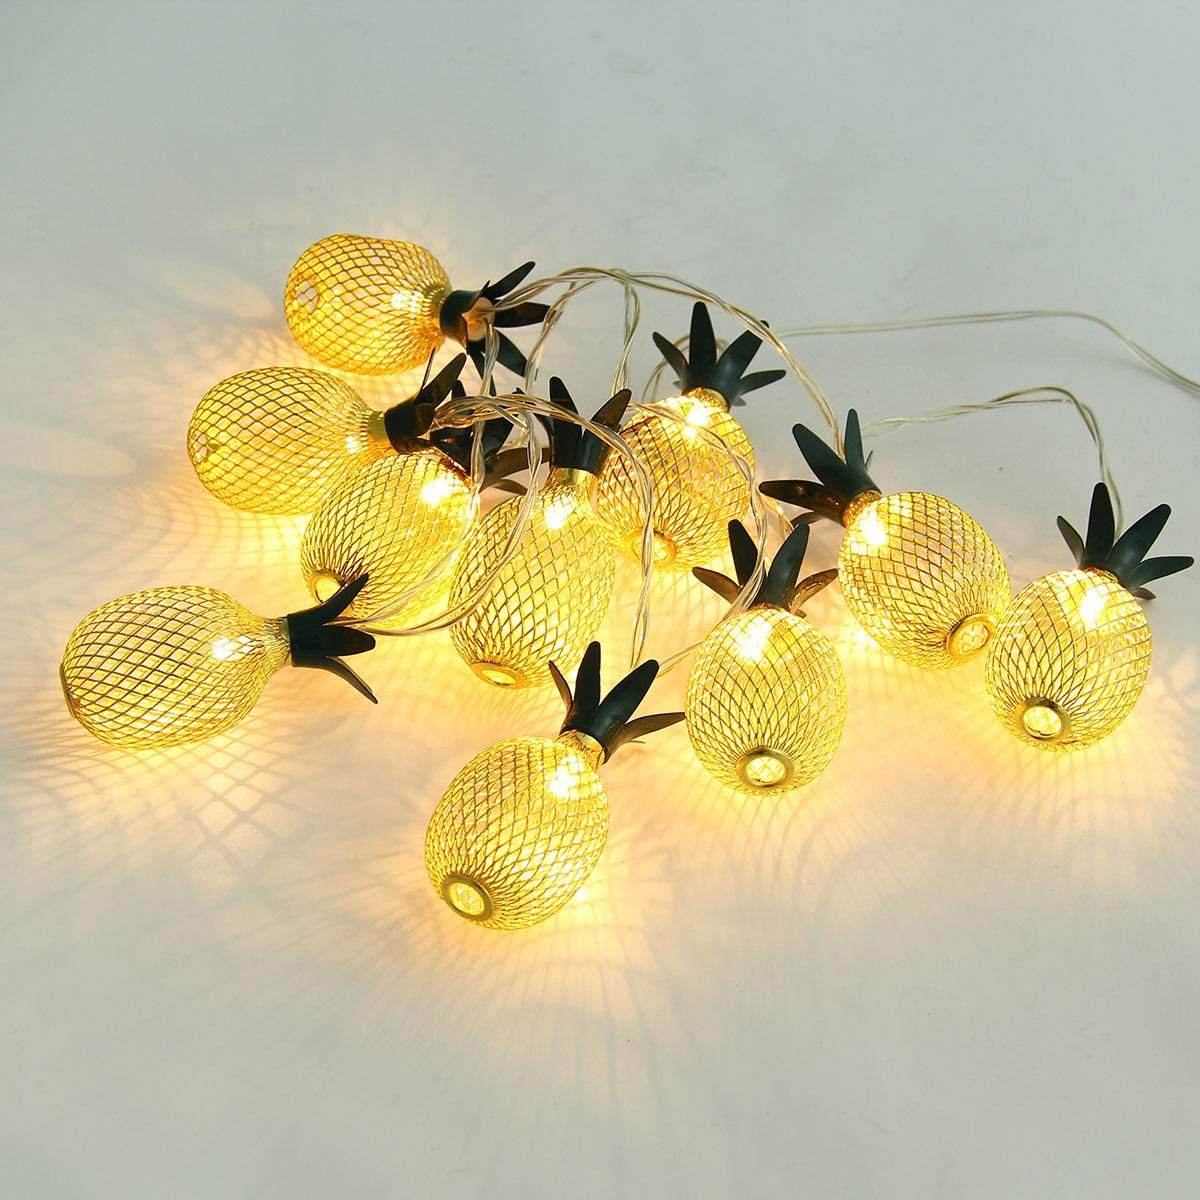 Pineapple String Lights, 200in/5m 40 LED Bulbs WaterproofBattery OperatedLantern String Lights with Battery Box Fairy Lights for Wedding Garden Festival Party Halloween Christmas Indoor & Outdoor by Umiwe (Image #5)